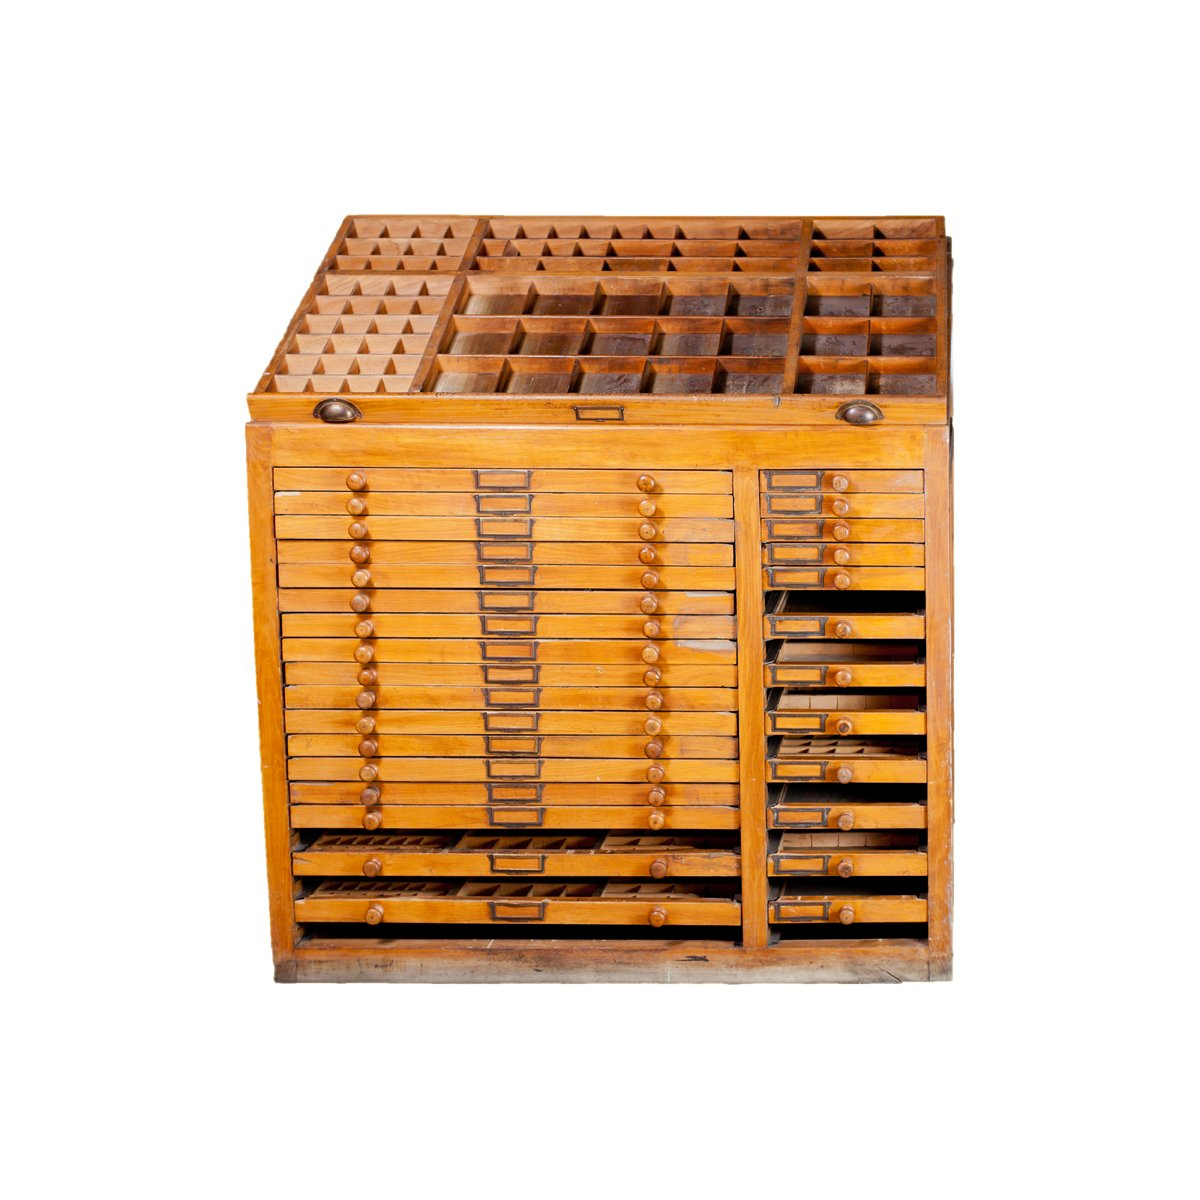 ip multiple cabinet casters finishes file wood with drawers walmart drawer vertcal halifax com